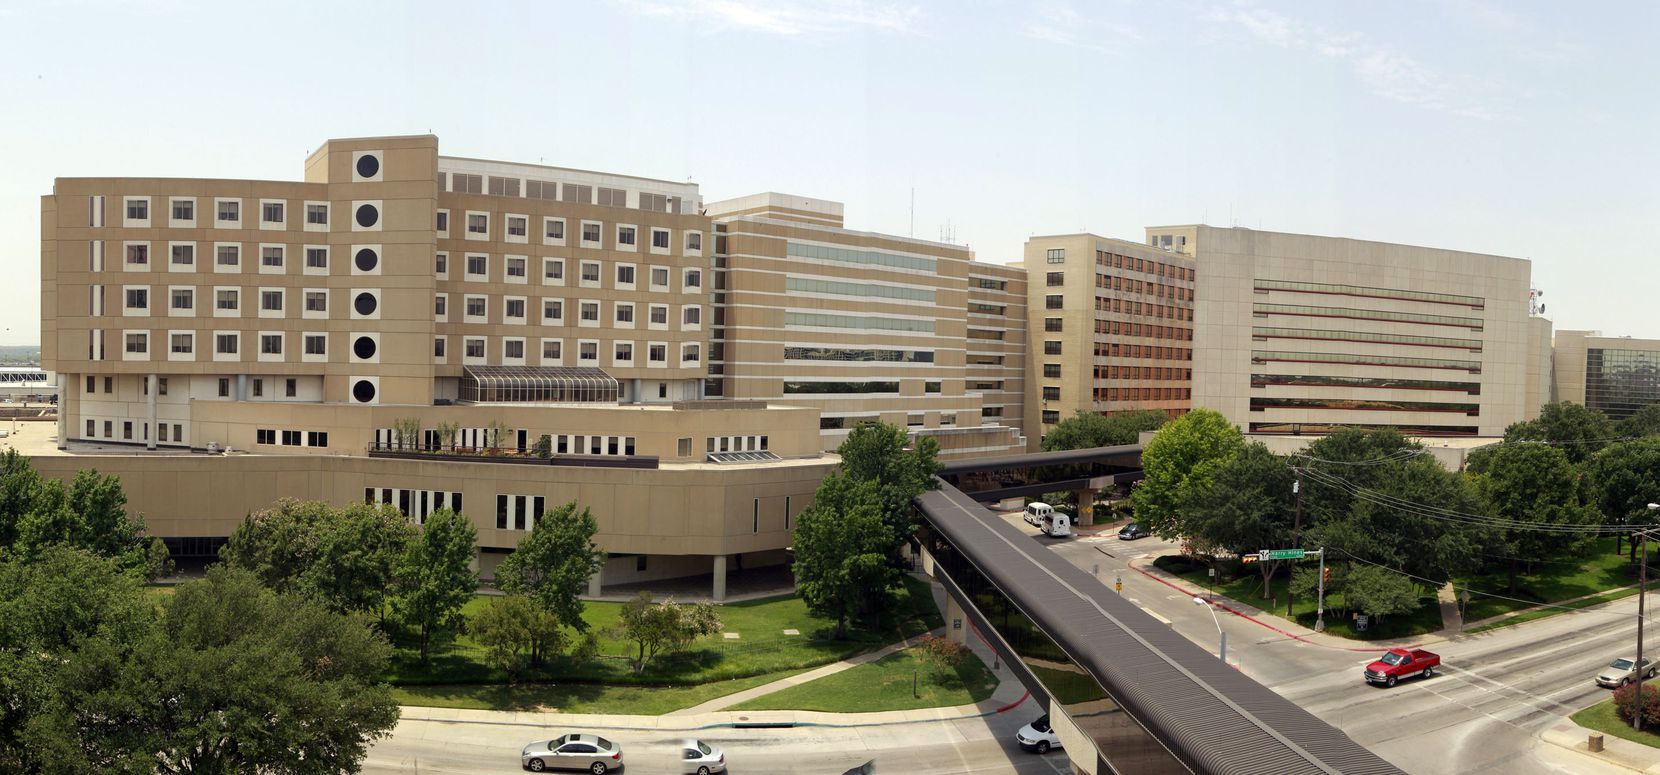 The former Parkland Hospital complex on Harry Hines Boulevard includes more than a dozen buildings.